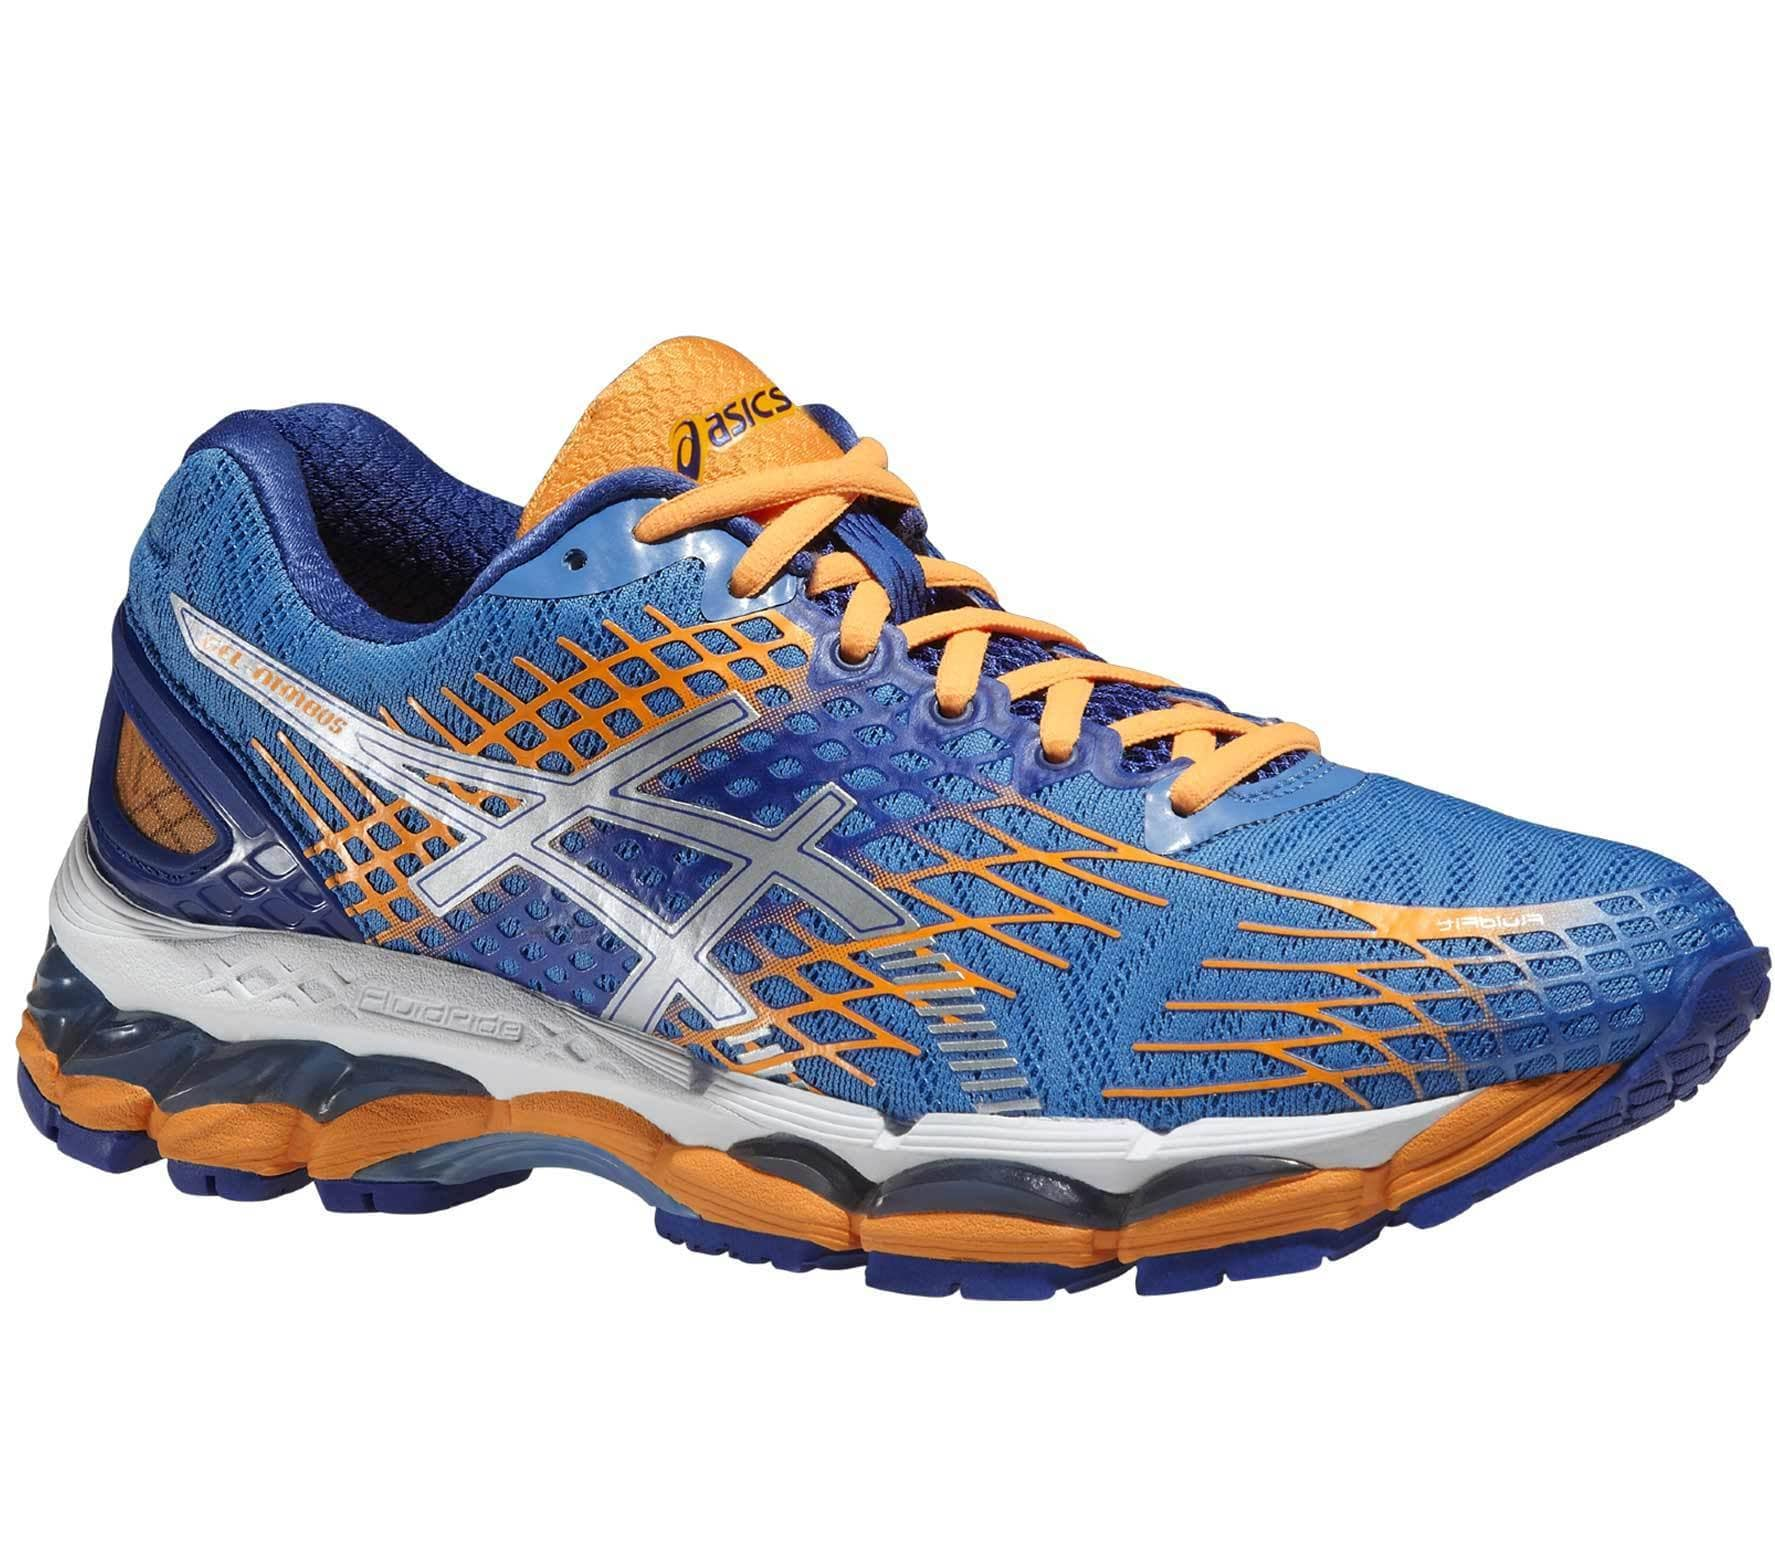 ASICS Gel-Nimbus 17 women's running shoes Damen